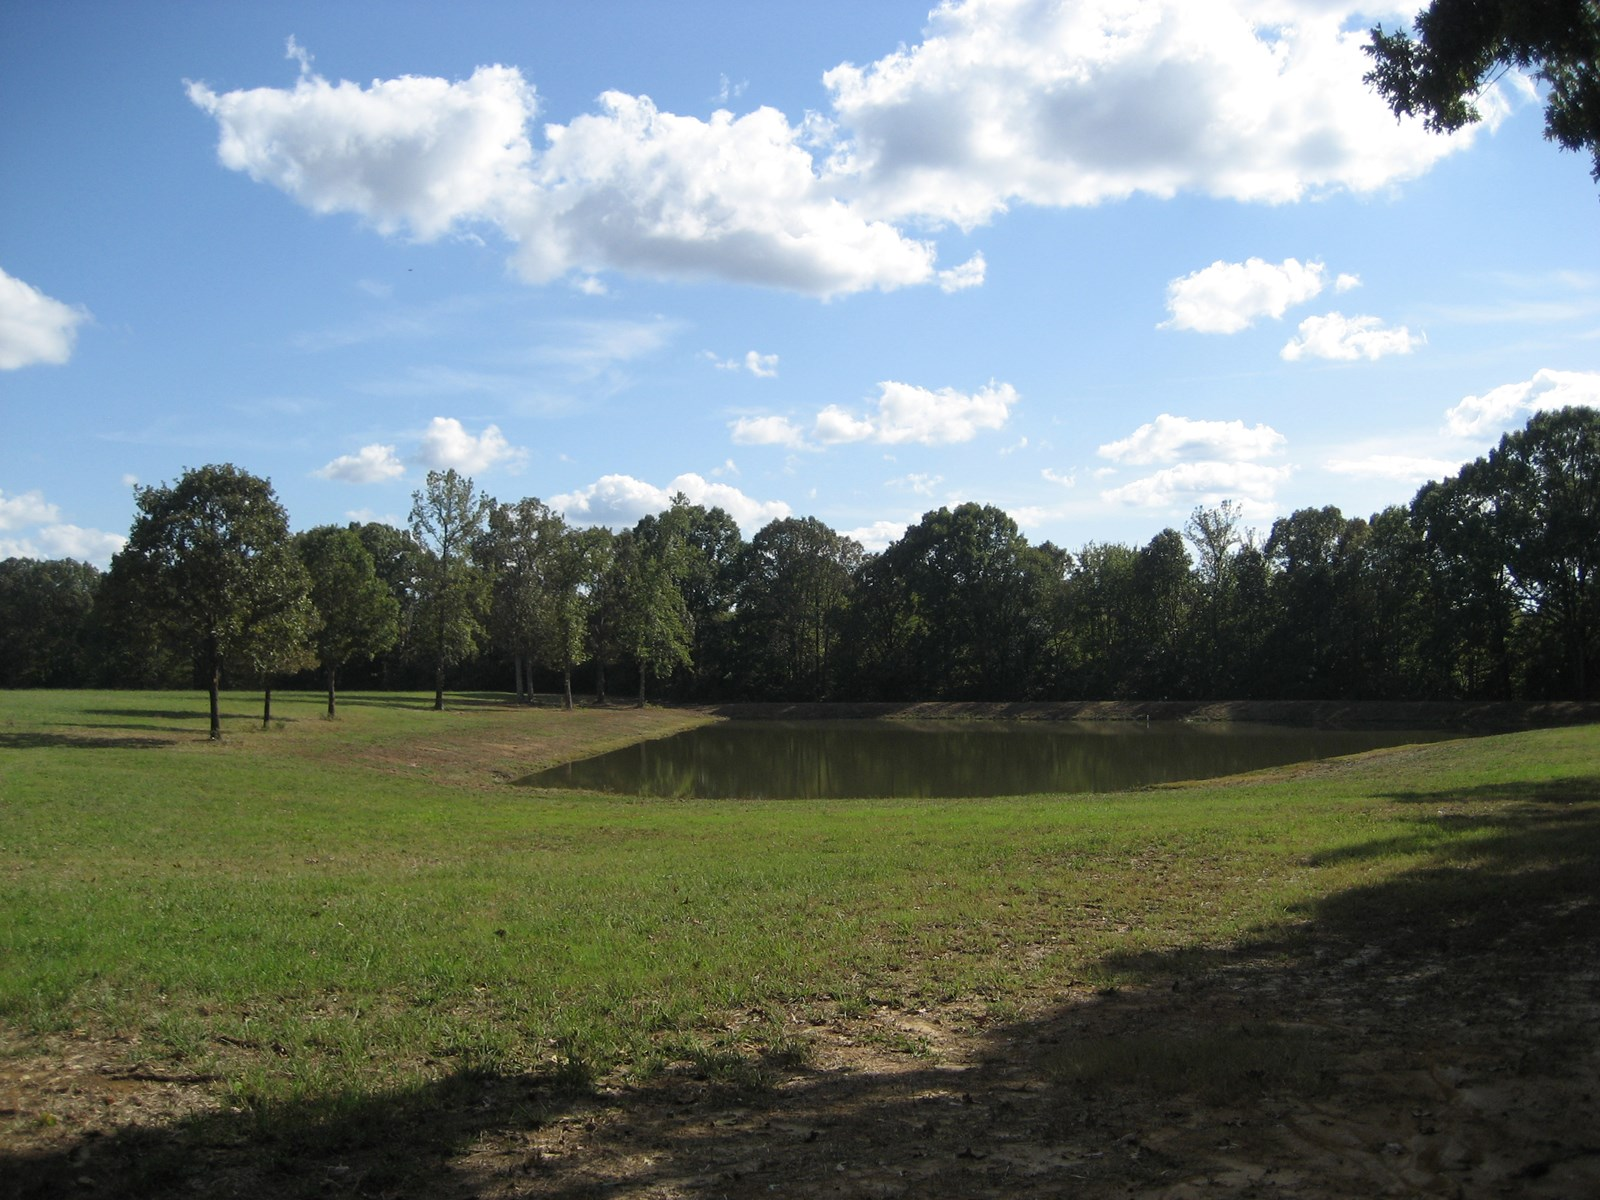 FARM FOR SALE IN TN - 2 PONDS, UNRESTRICTED LAND, HUNTING